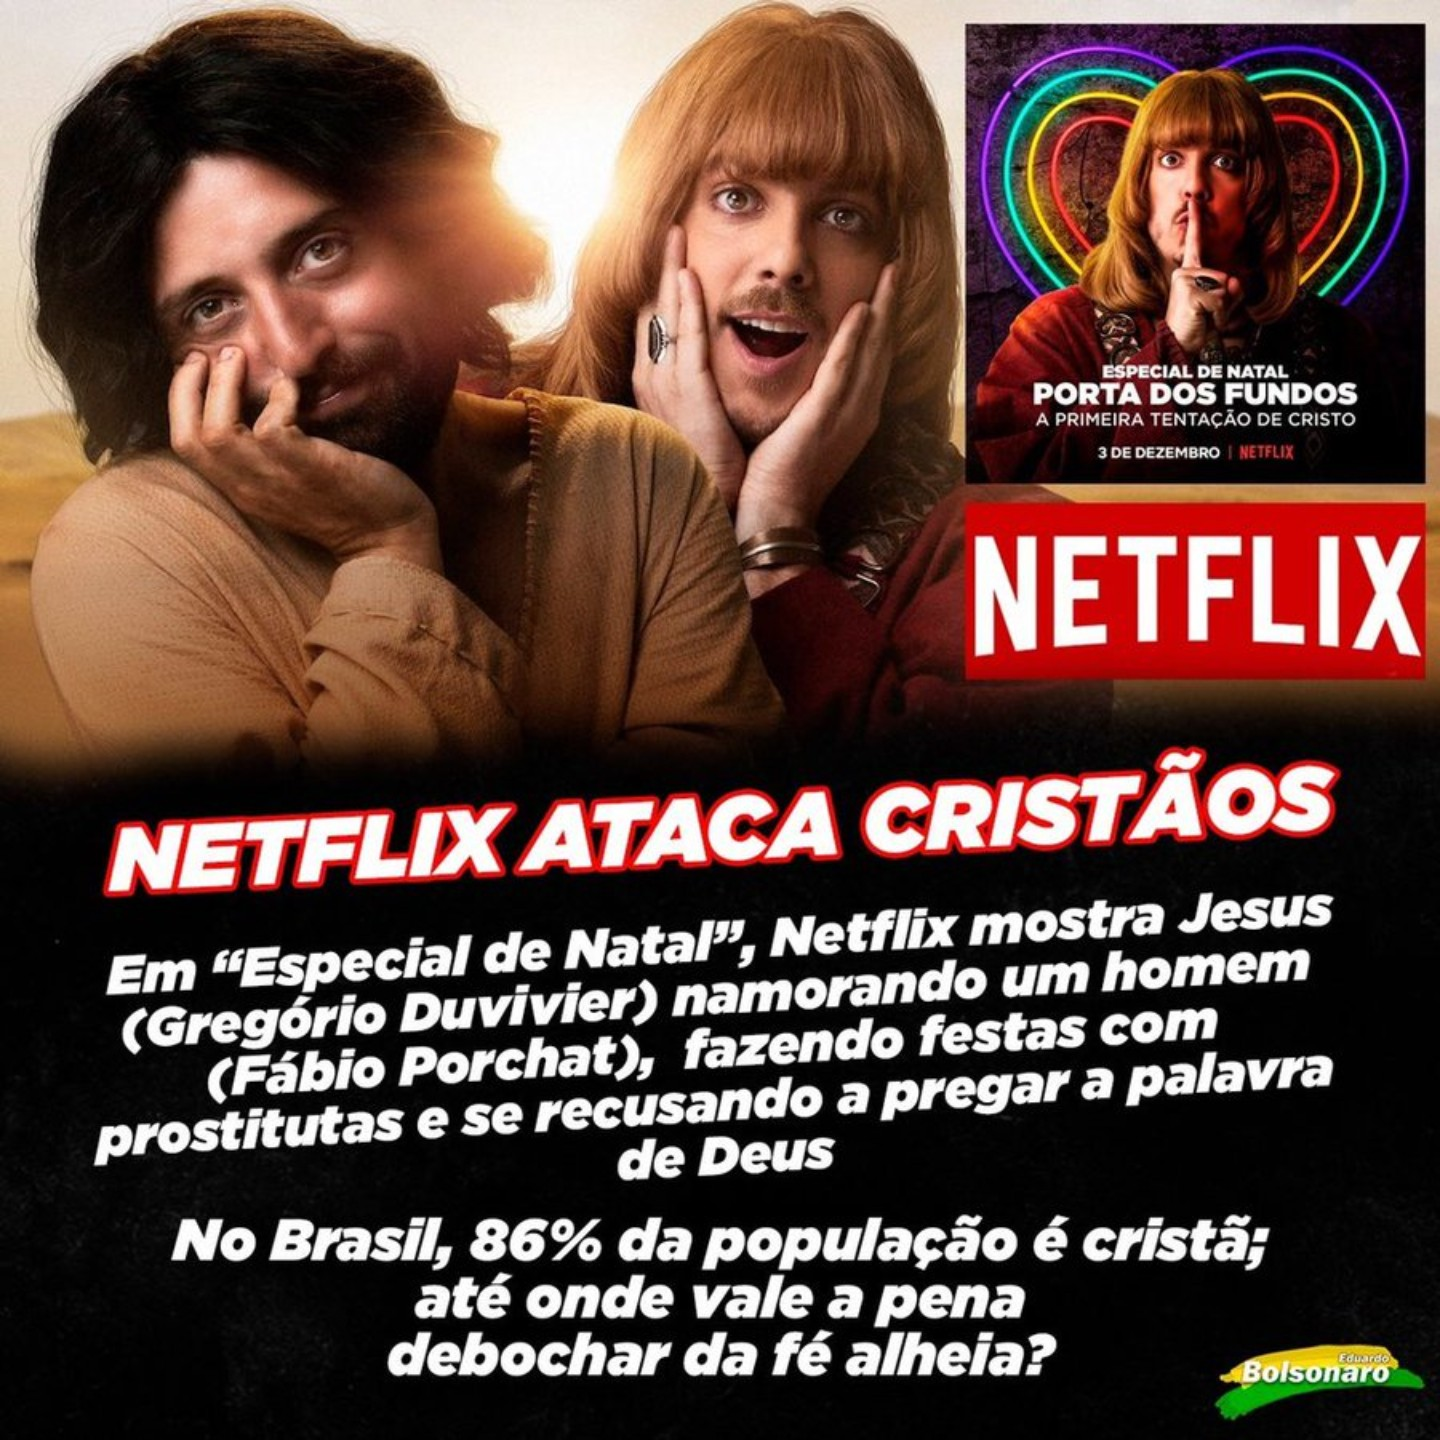 , The Comedy Group That Made Brazil's 'Gay Jesus' Show Was Firebombed, Saubio Making Wealth